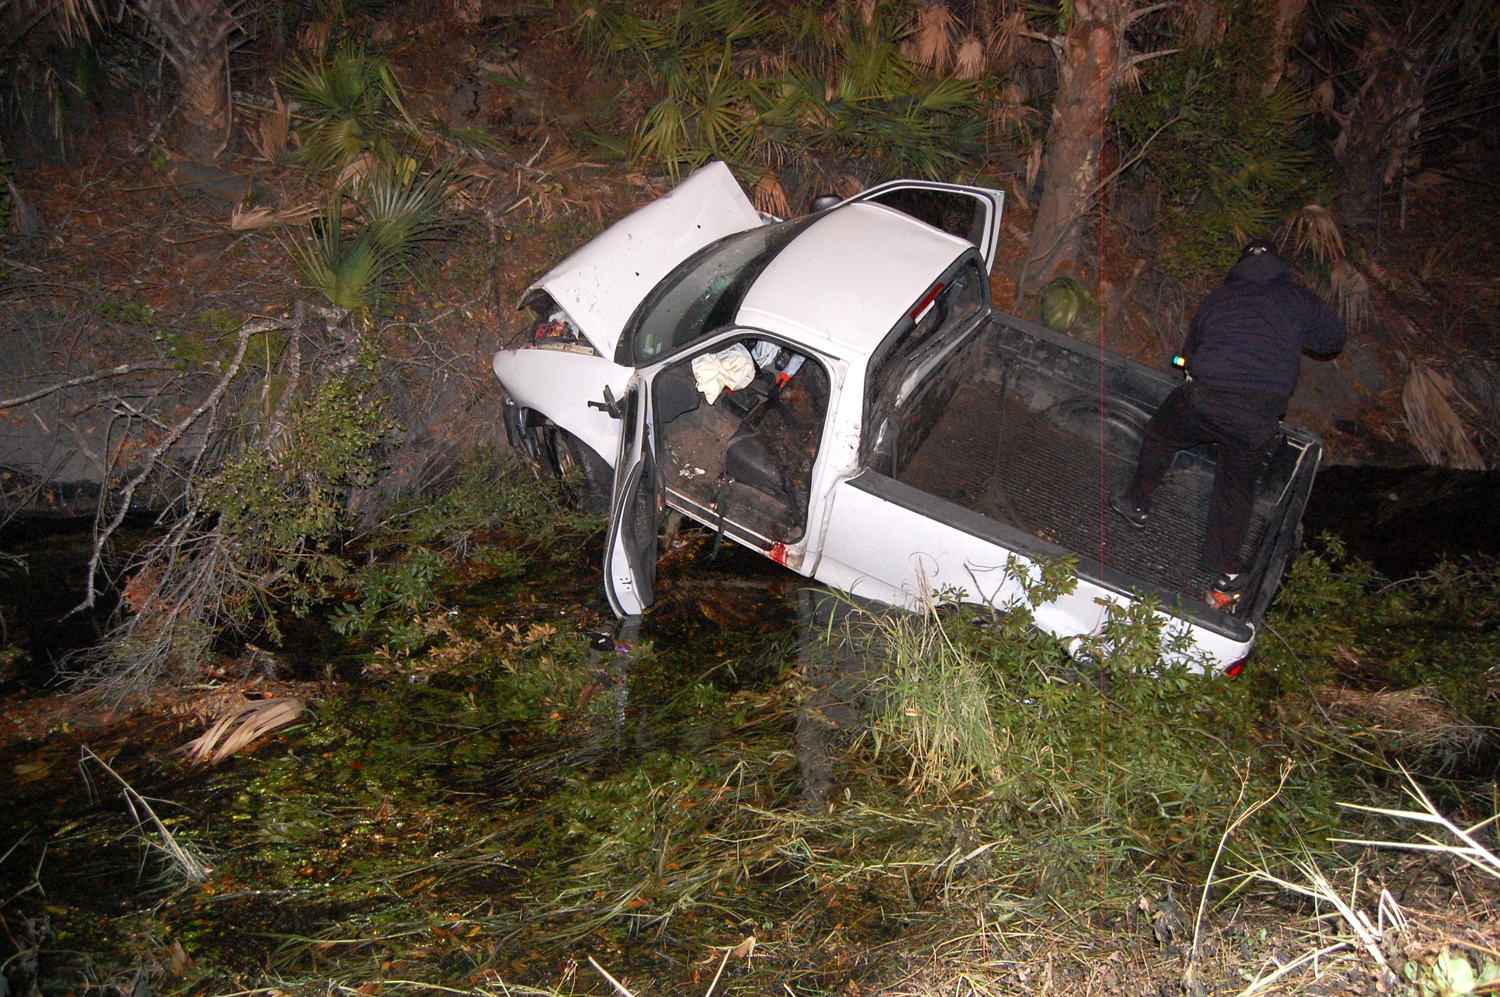 The 2003 Ford F150 XL literally flew across the length of the canal and hit the embankment on the other side of the road before crashing down toward the water. (© FlaglerLive)